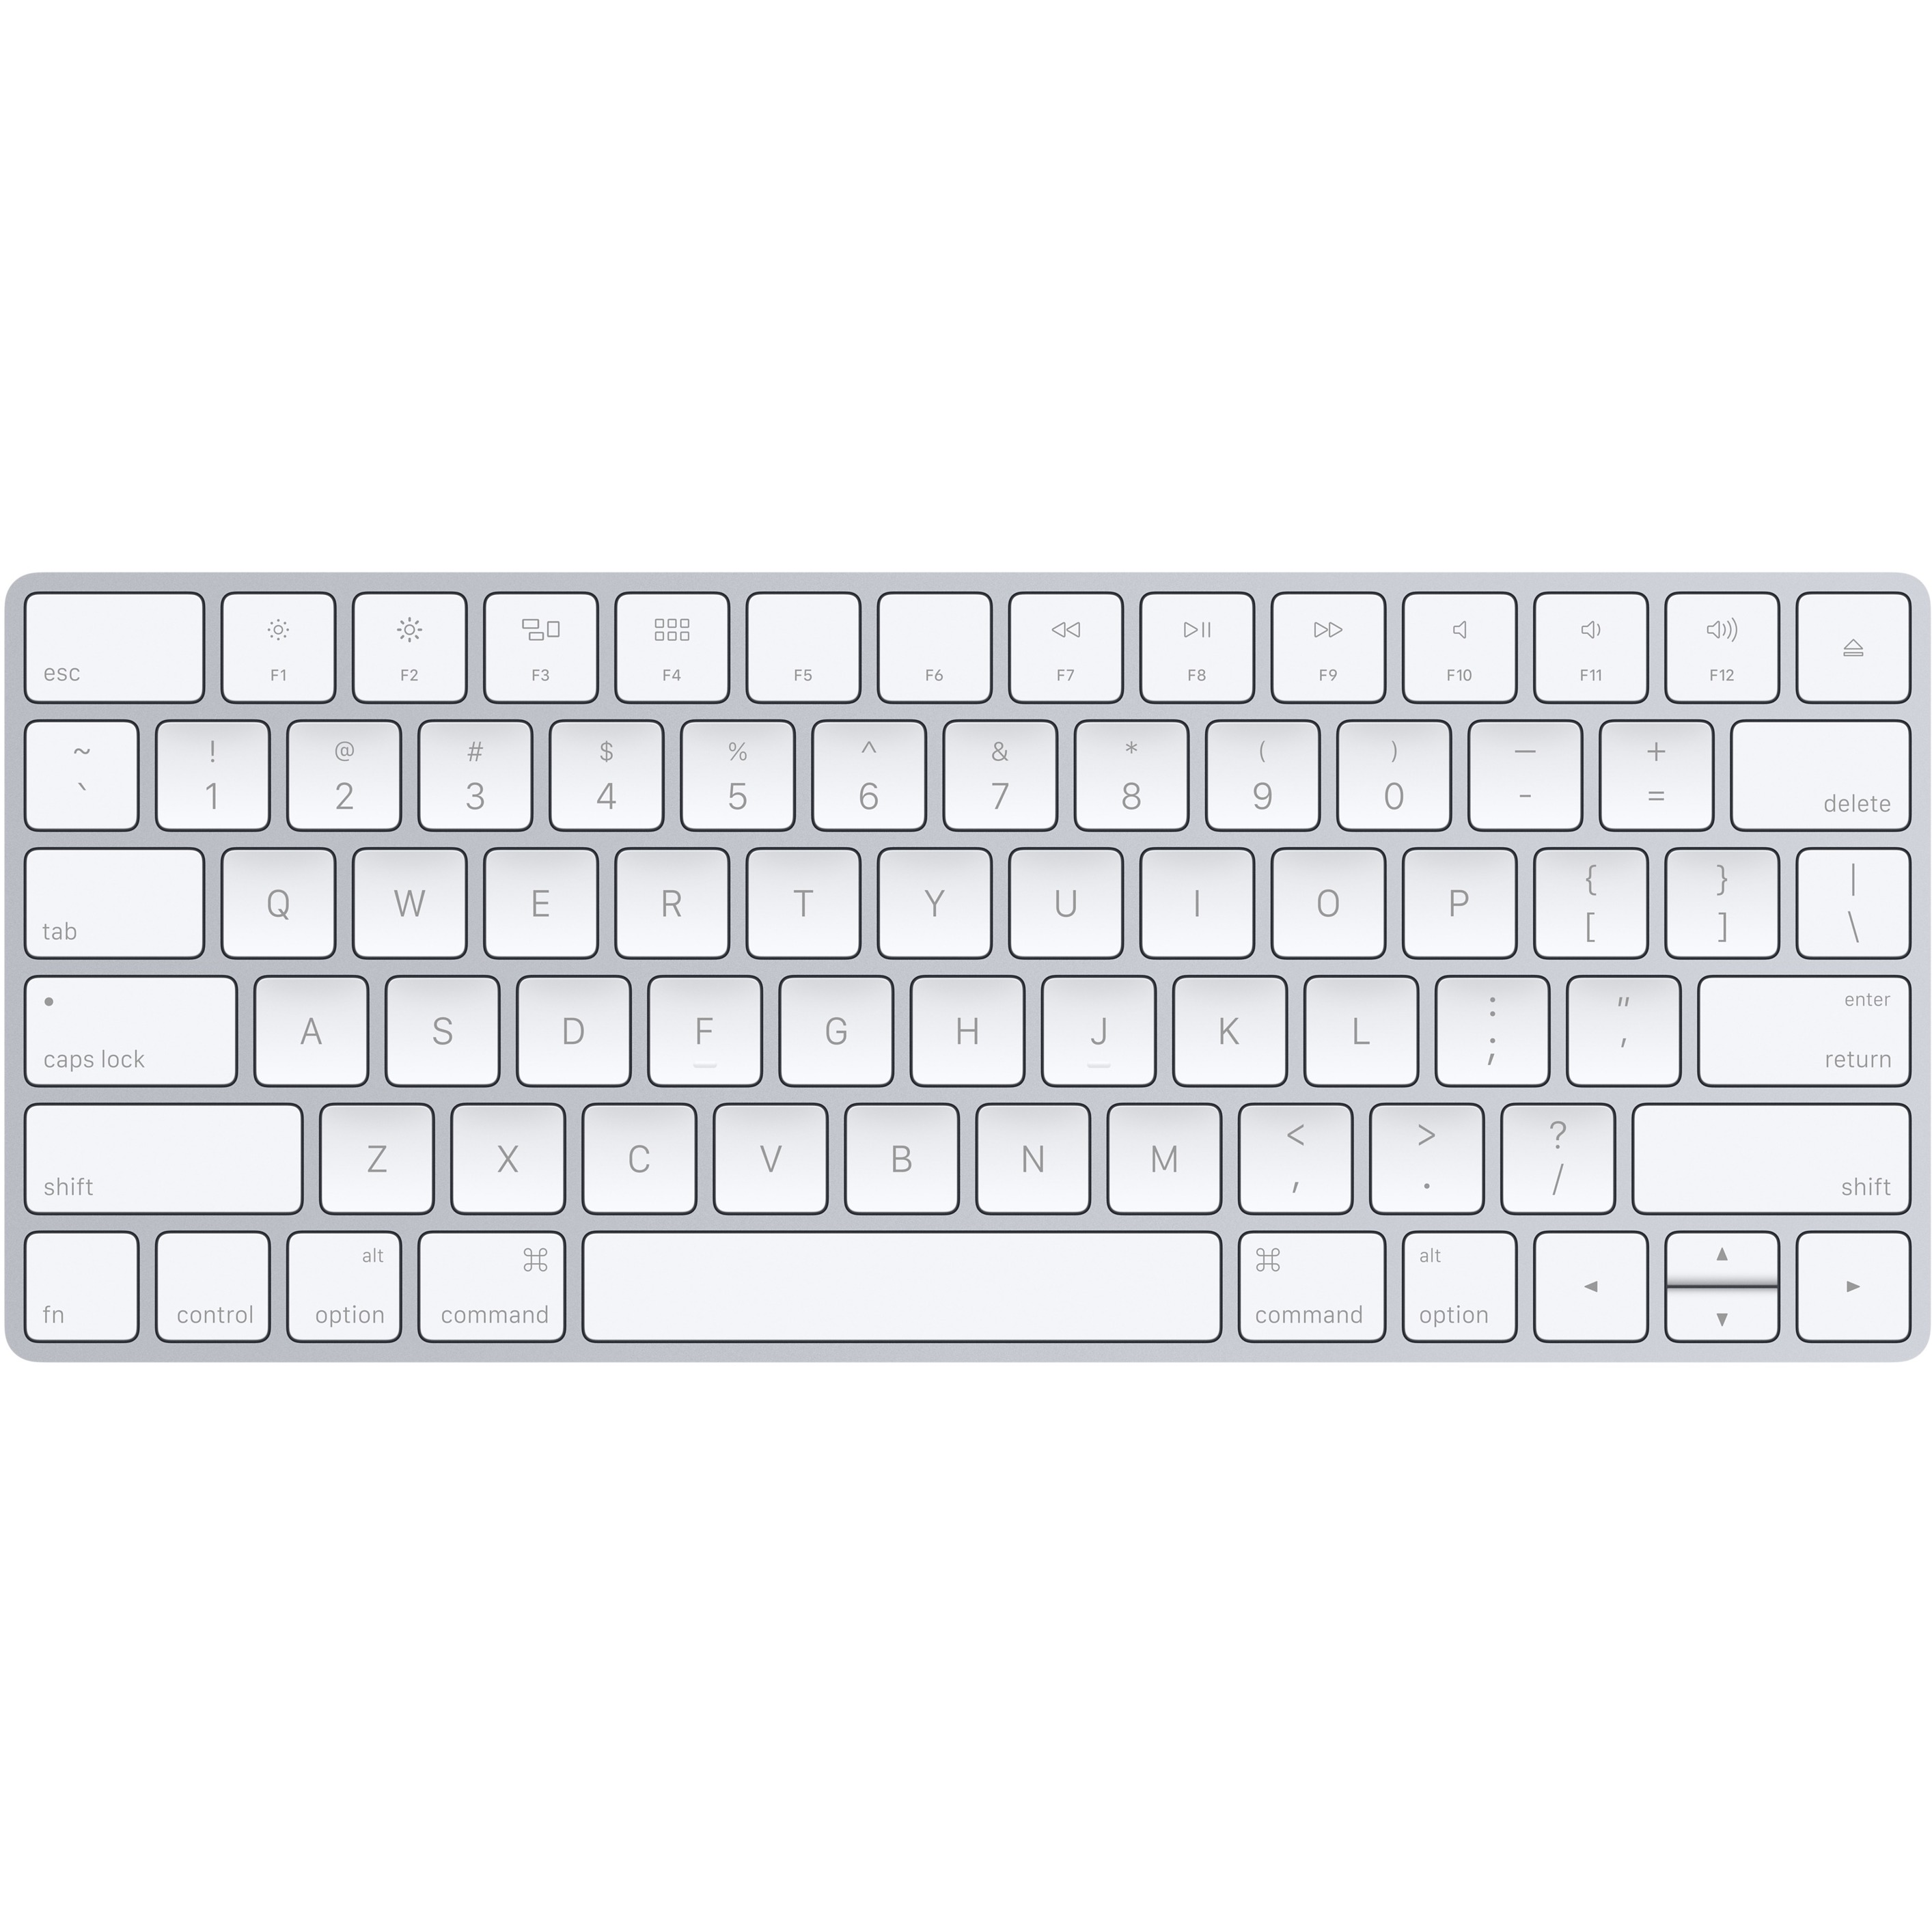 Apple Magic Keyboard - Wired/Wireless Connectivity - Bluetooth - Lightning Interface - Swedish - Compatible with Computer - Scissors 5